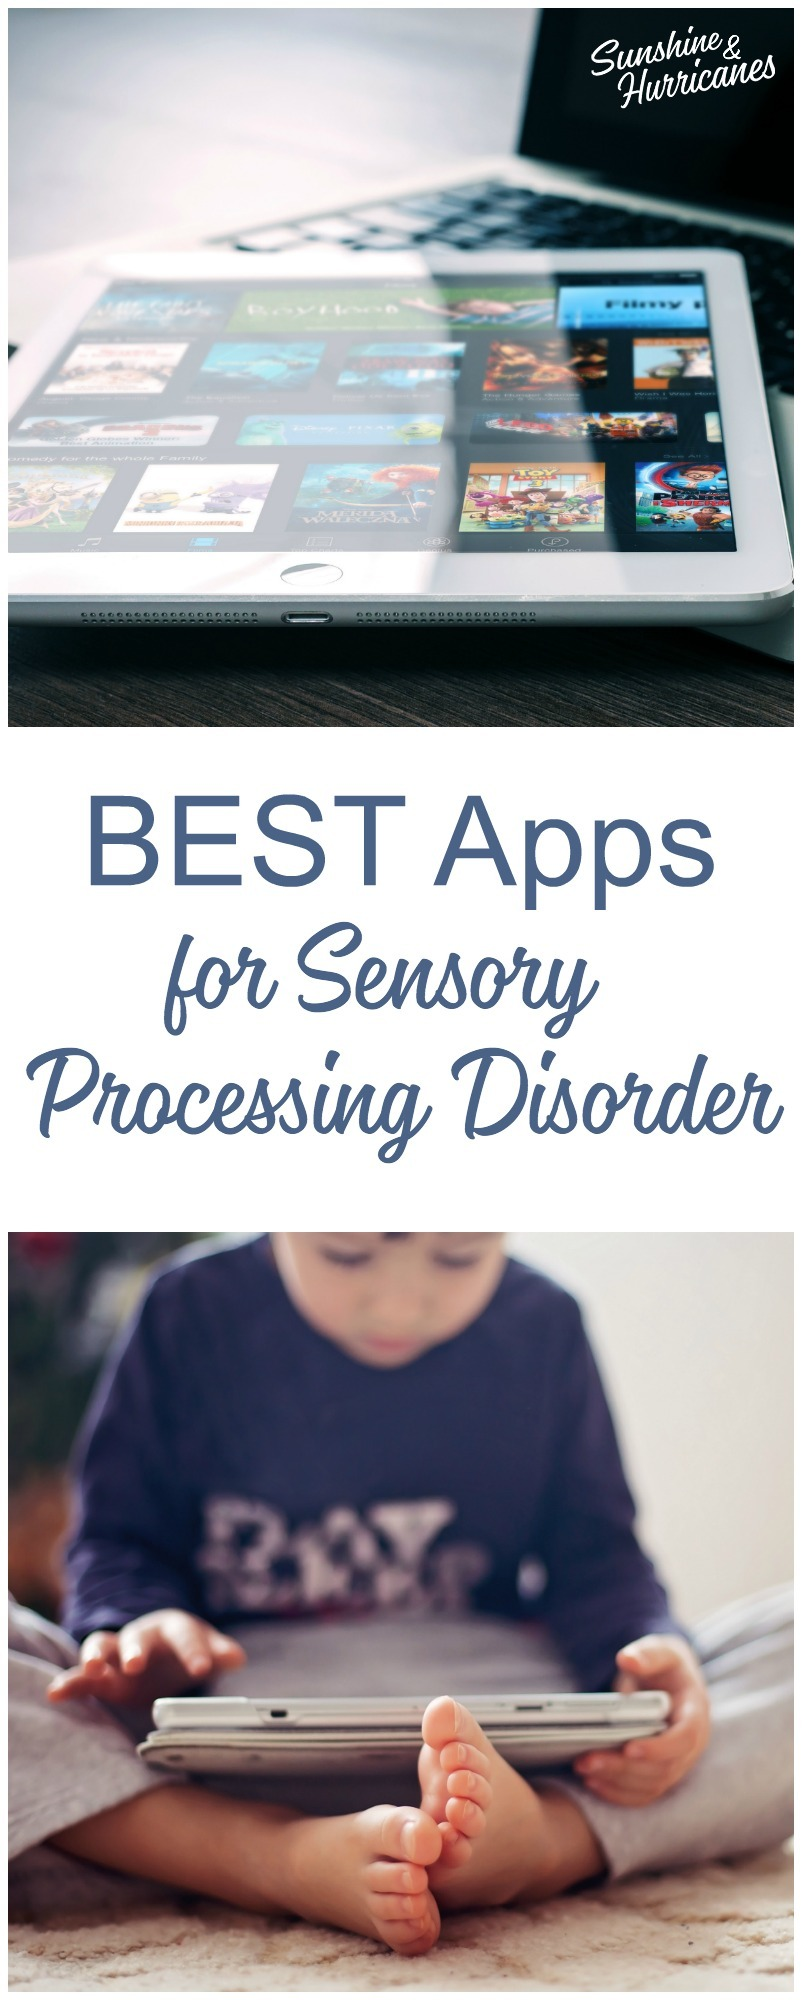 Best Apps for Sensory Processing Disorder. Technology is giving parents tons of new resources to help kids with special needs. Here are some of the most helpful,most of which are free.